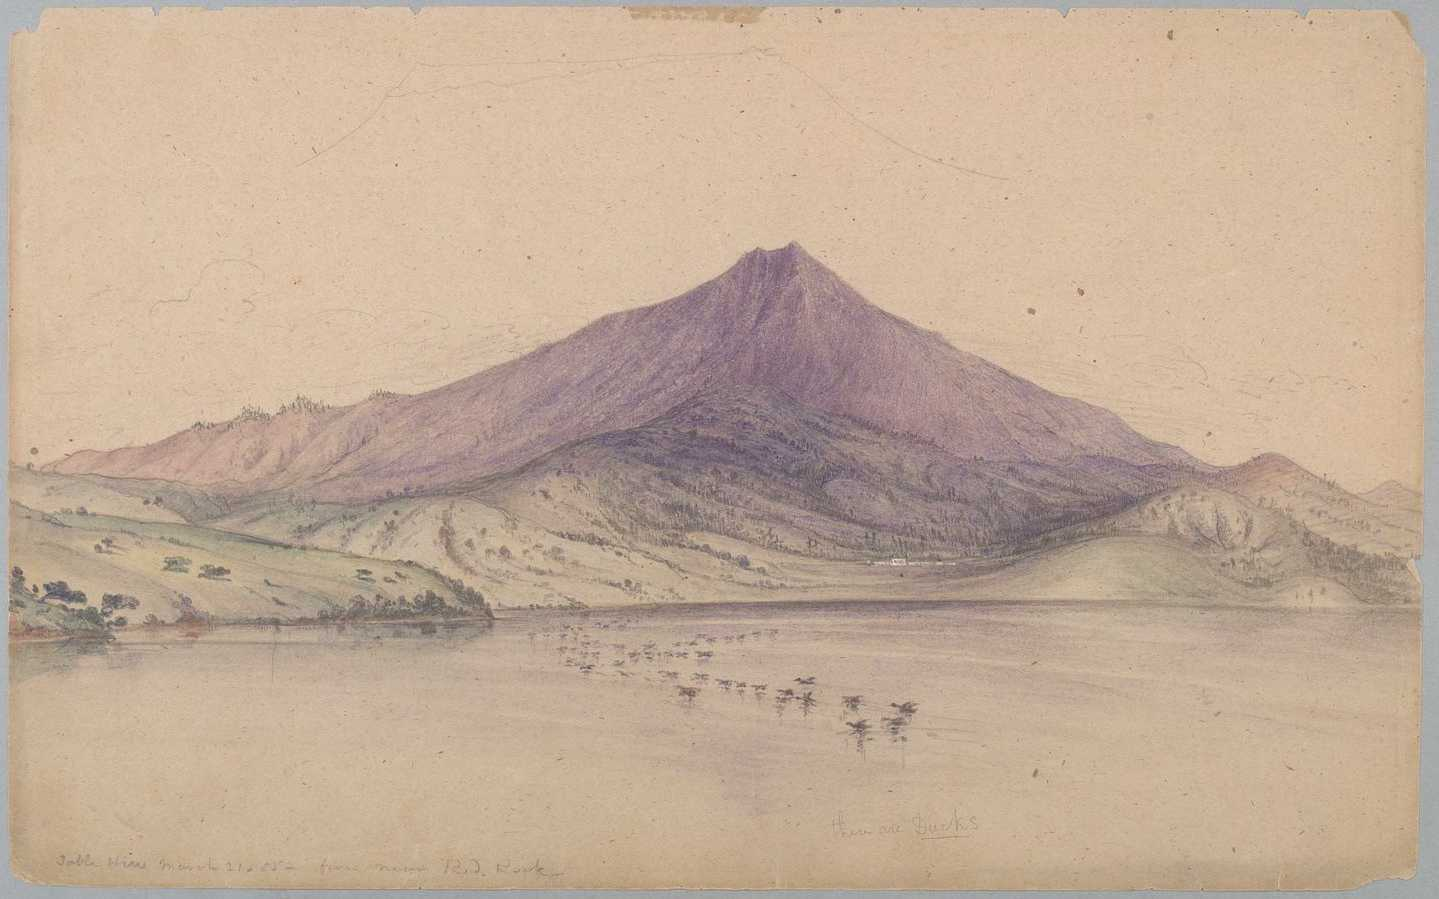 Watercolor painting of Mount Tamalpais, by William McMurtrie, 1855. Source: Wikimedia